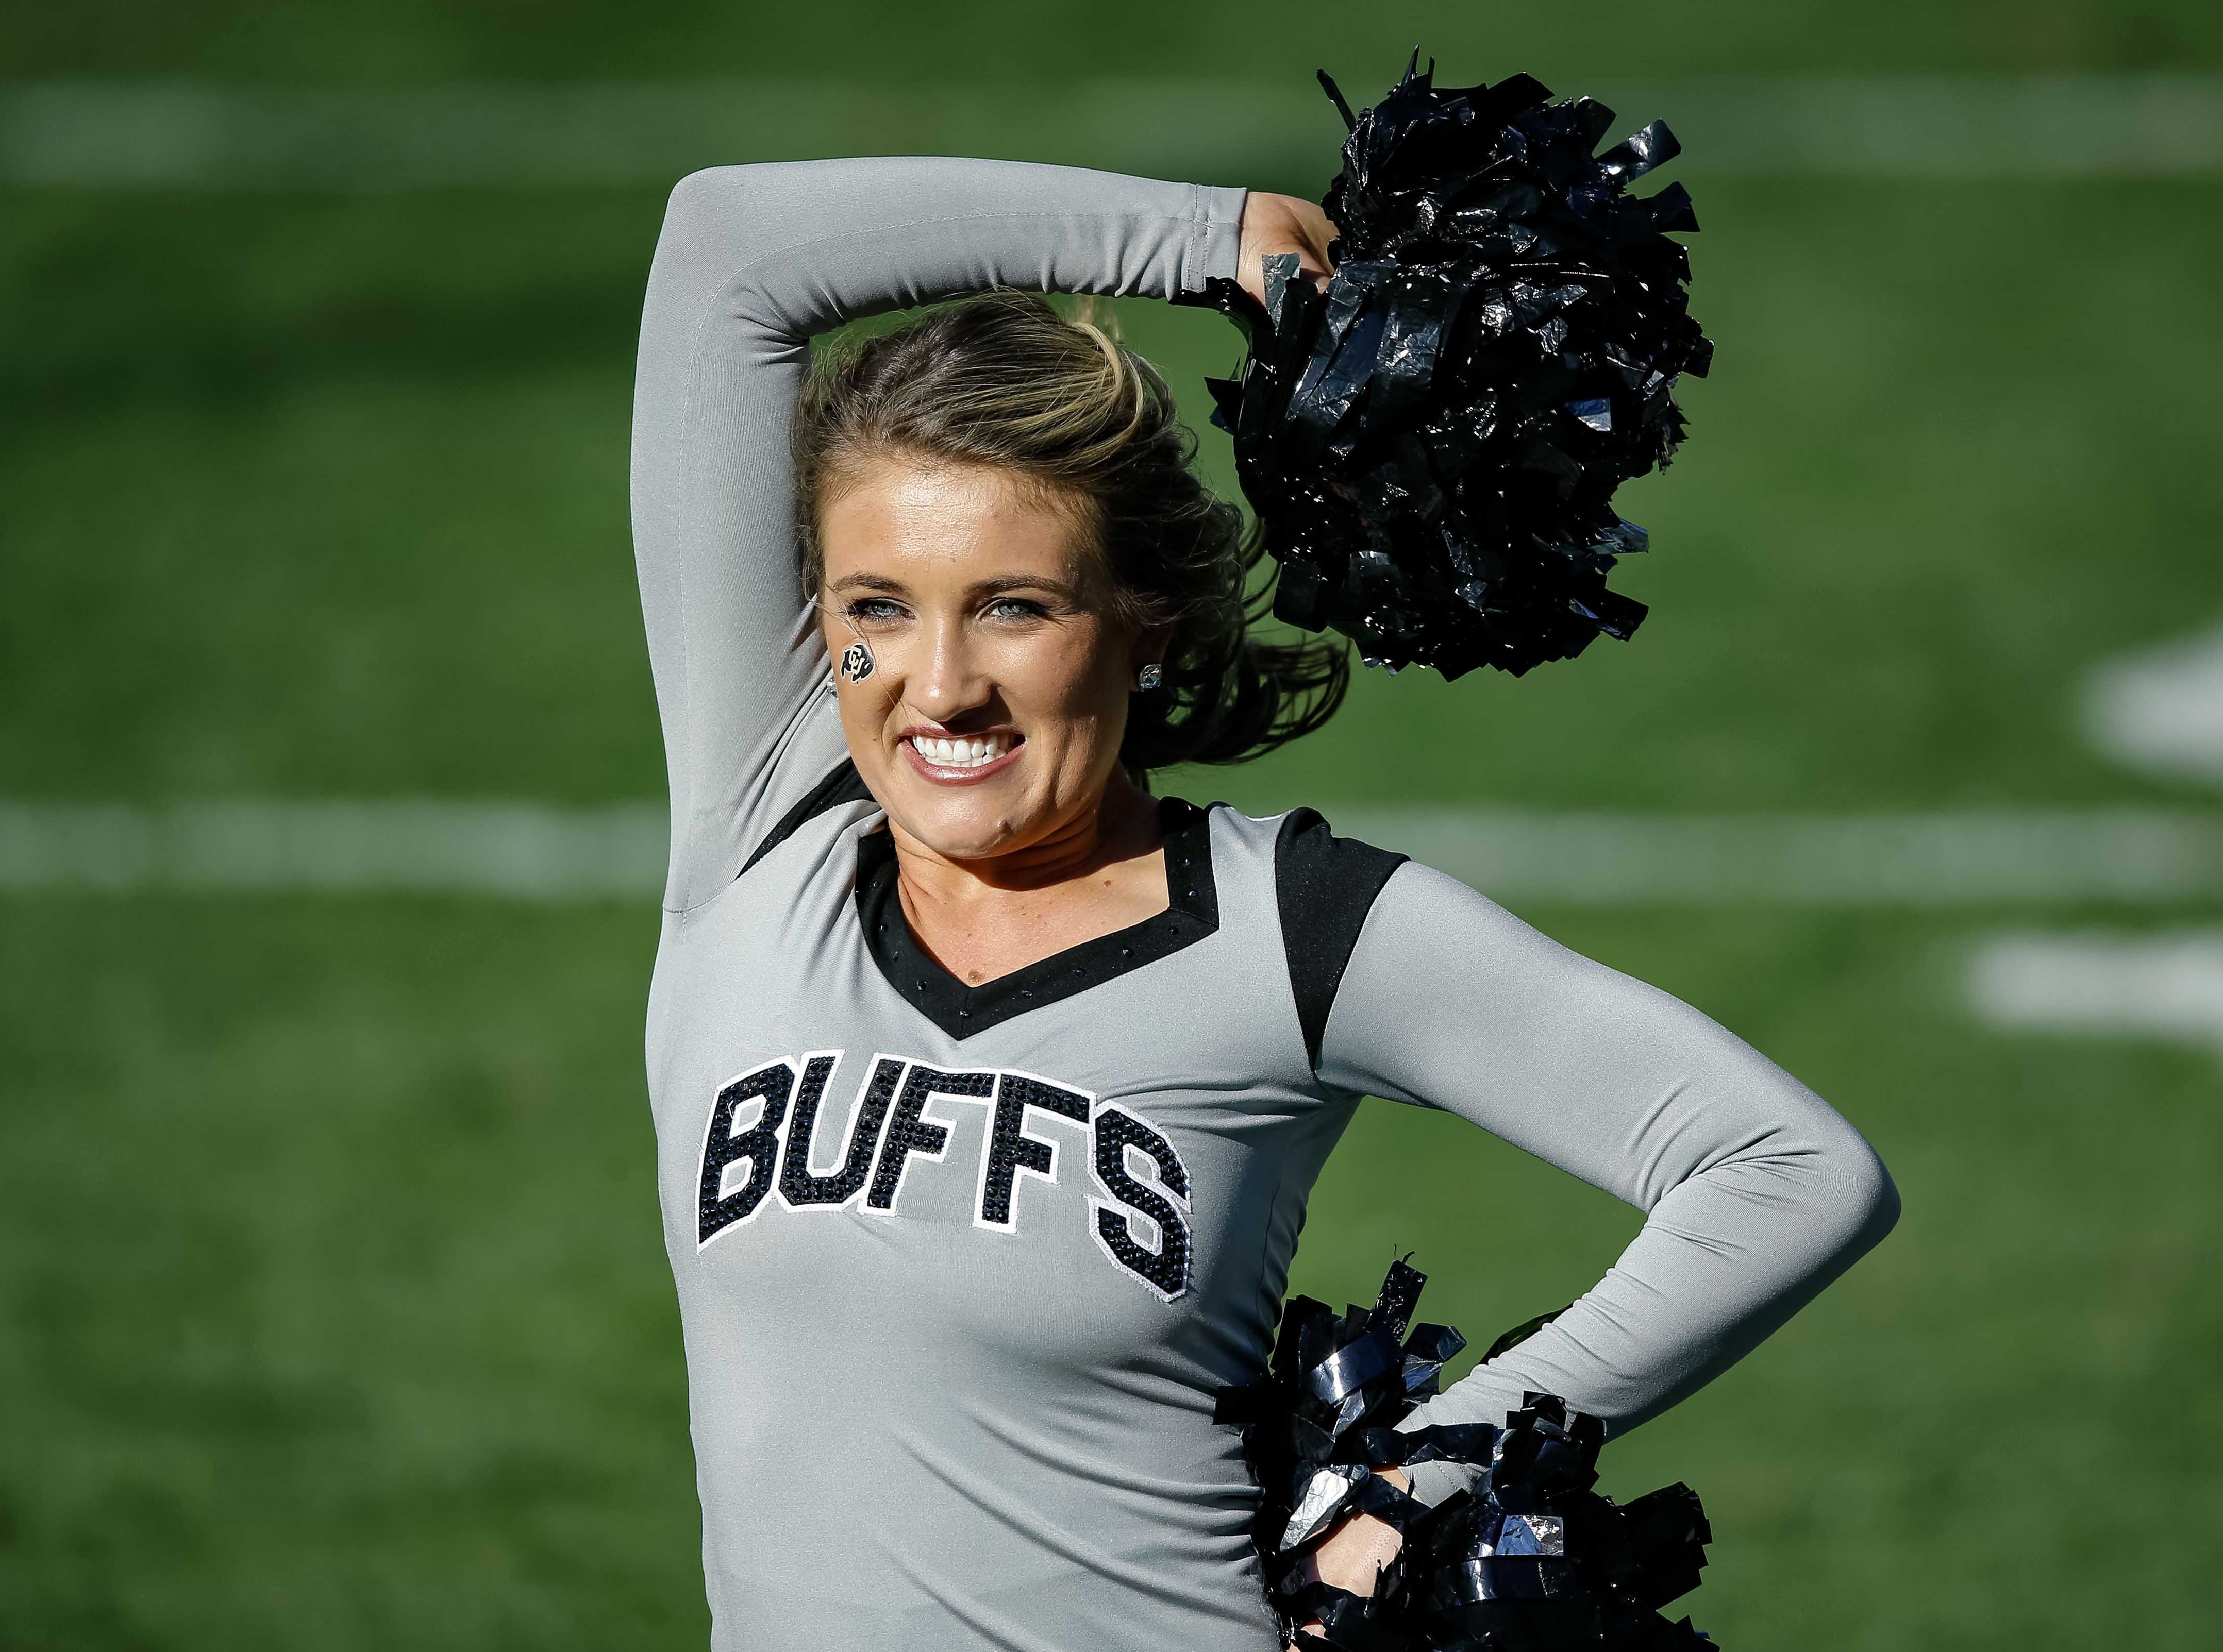 Week 11: A Colorado Buffaloes cheerleader performs before the game against the Washington State Cougars at Folsom Field.